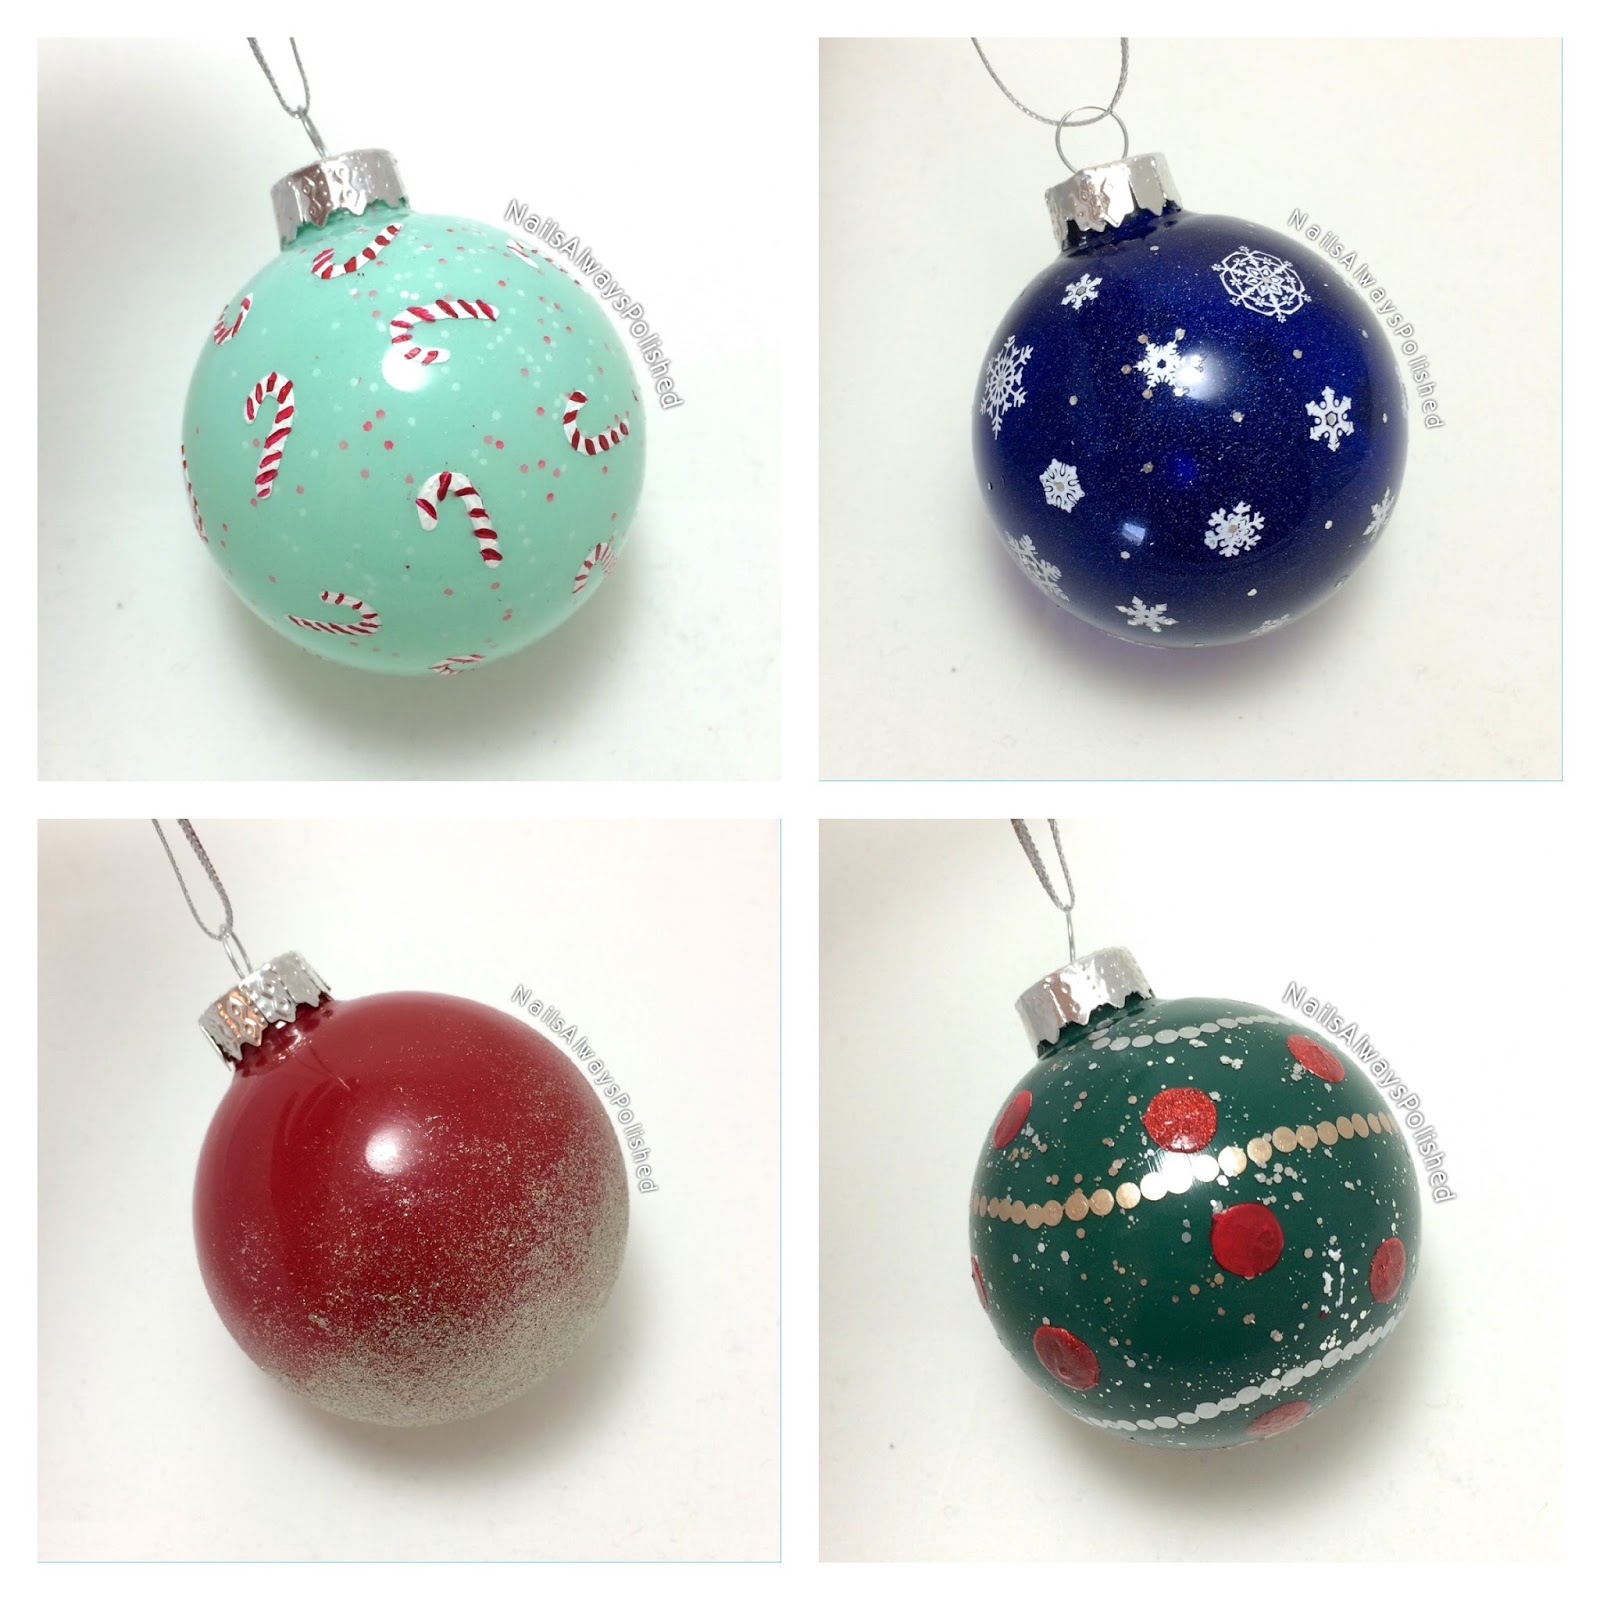 Nails Always Polished: Christmas Ornaments